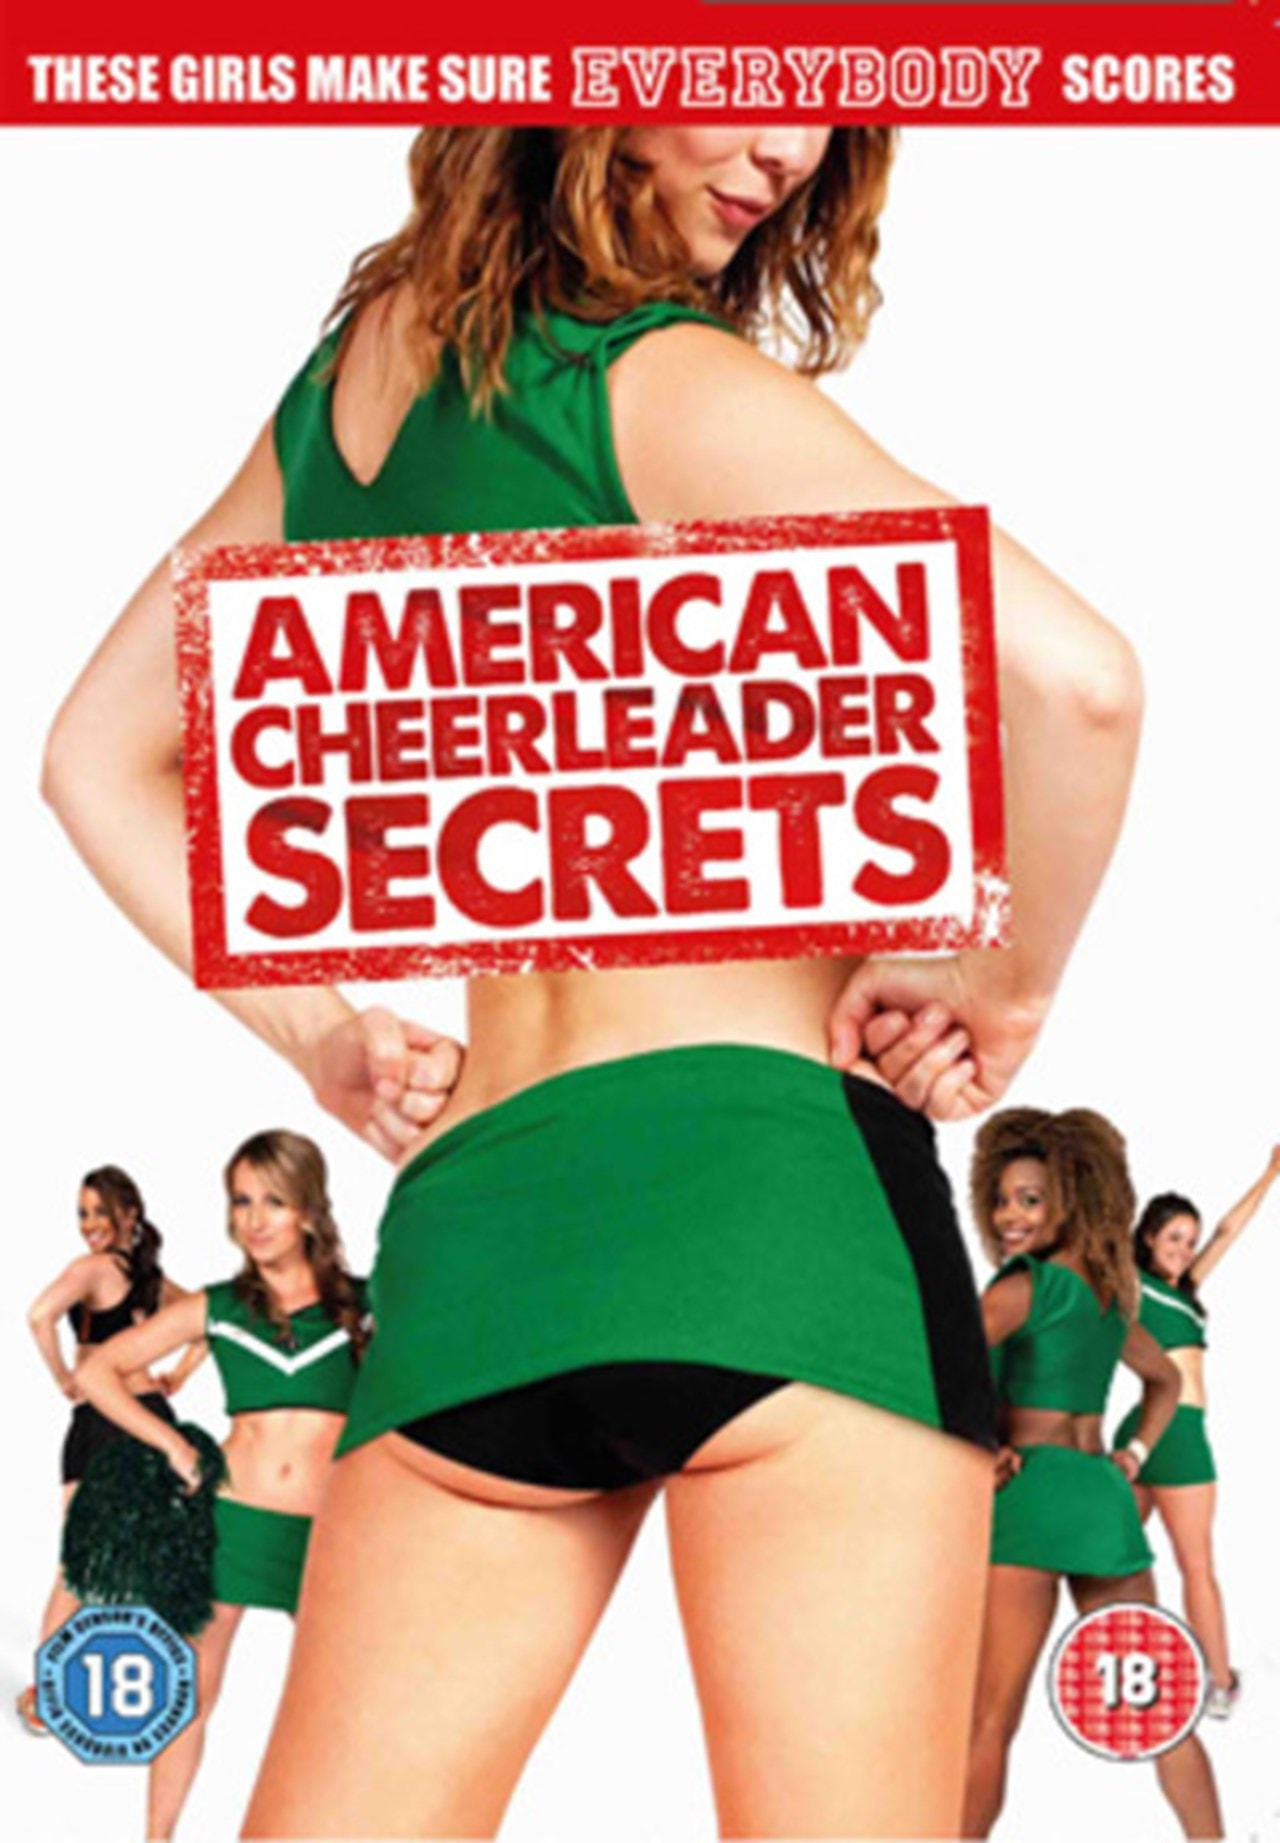 American Cheerleader Secrets - 1